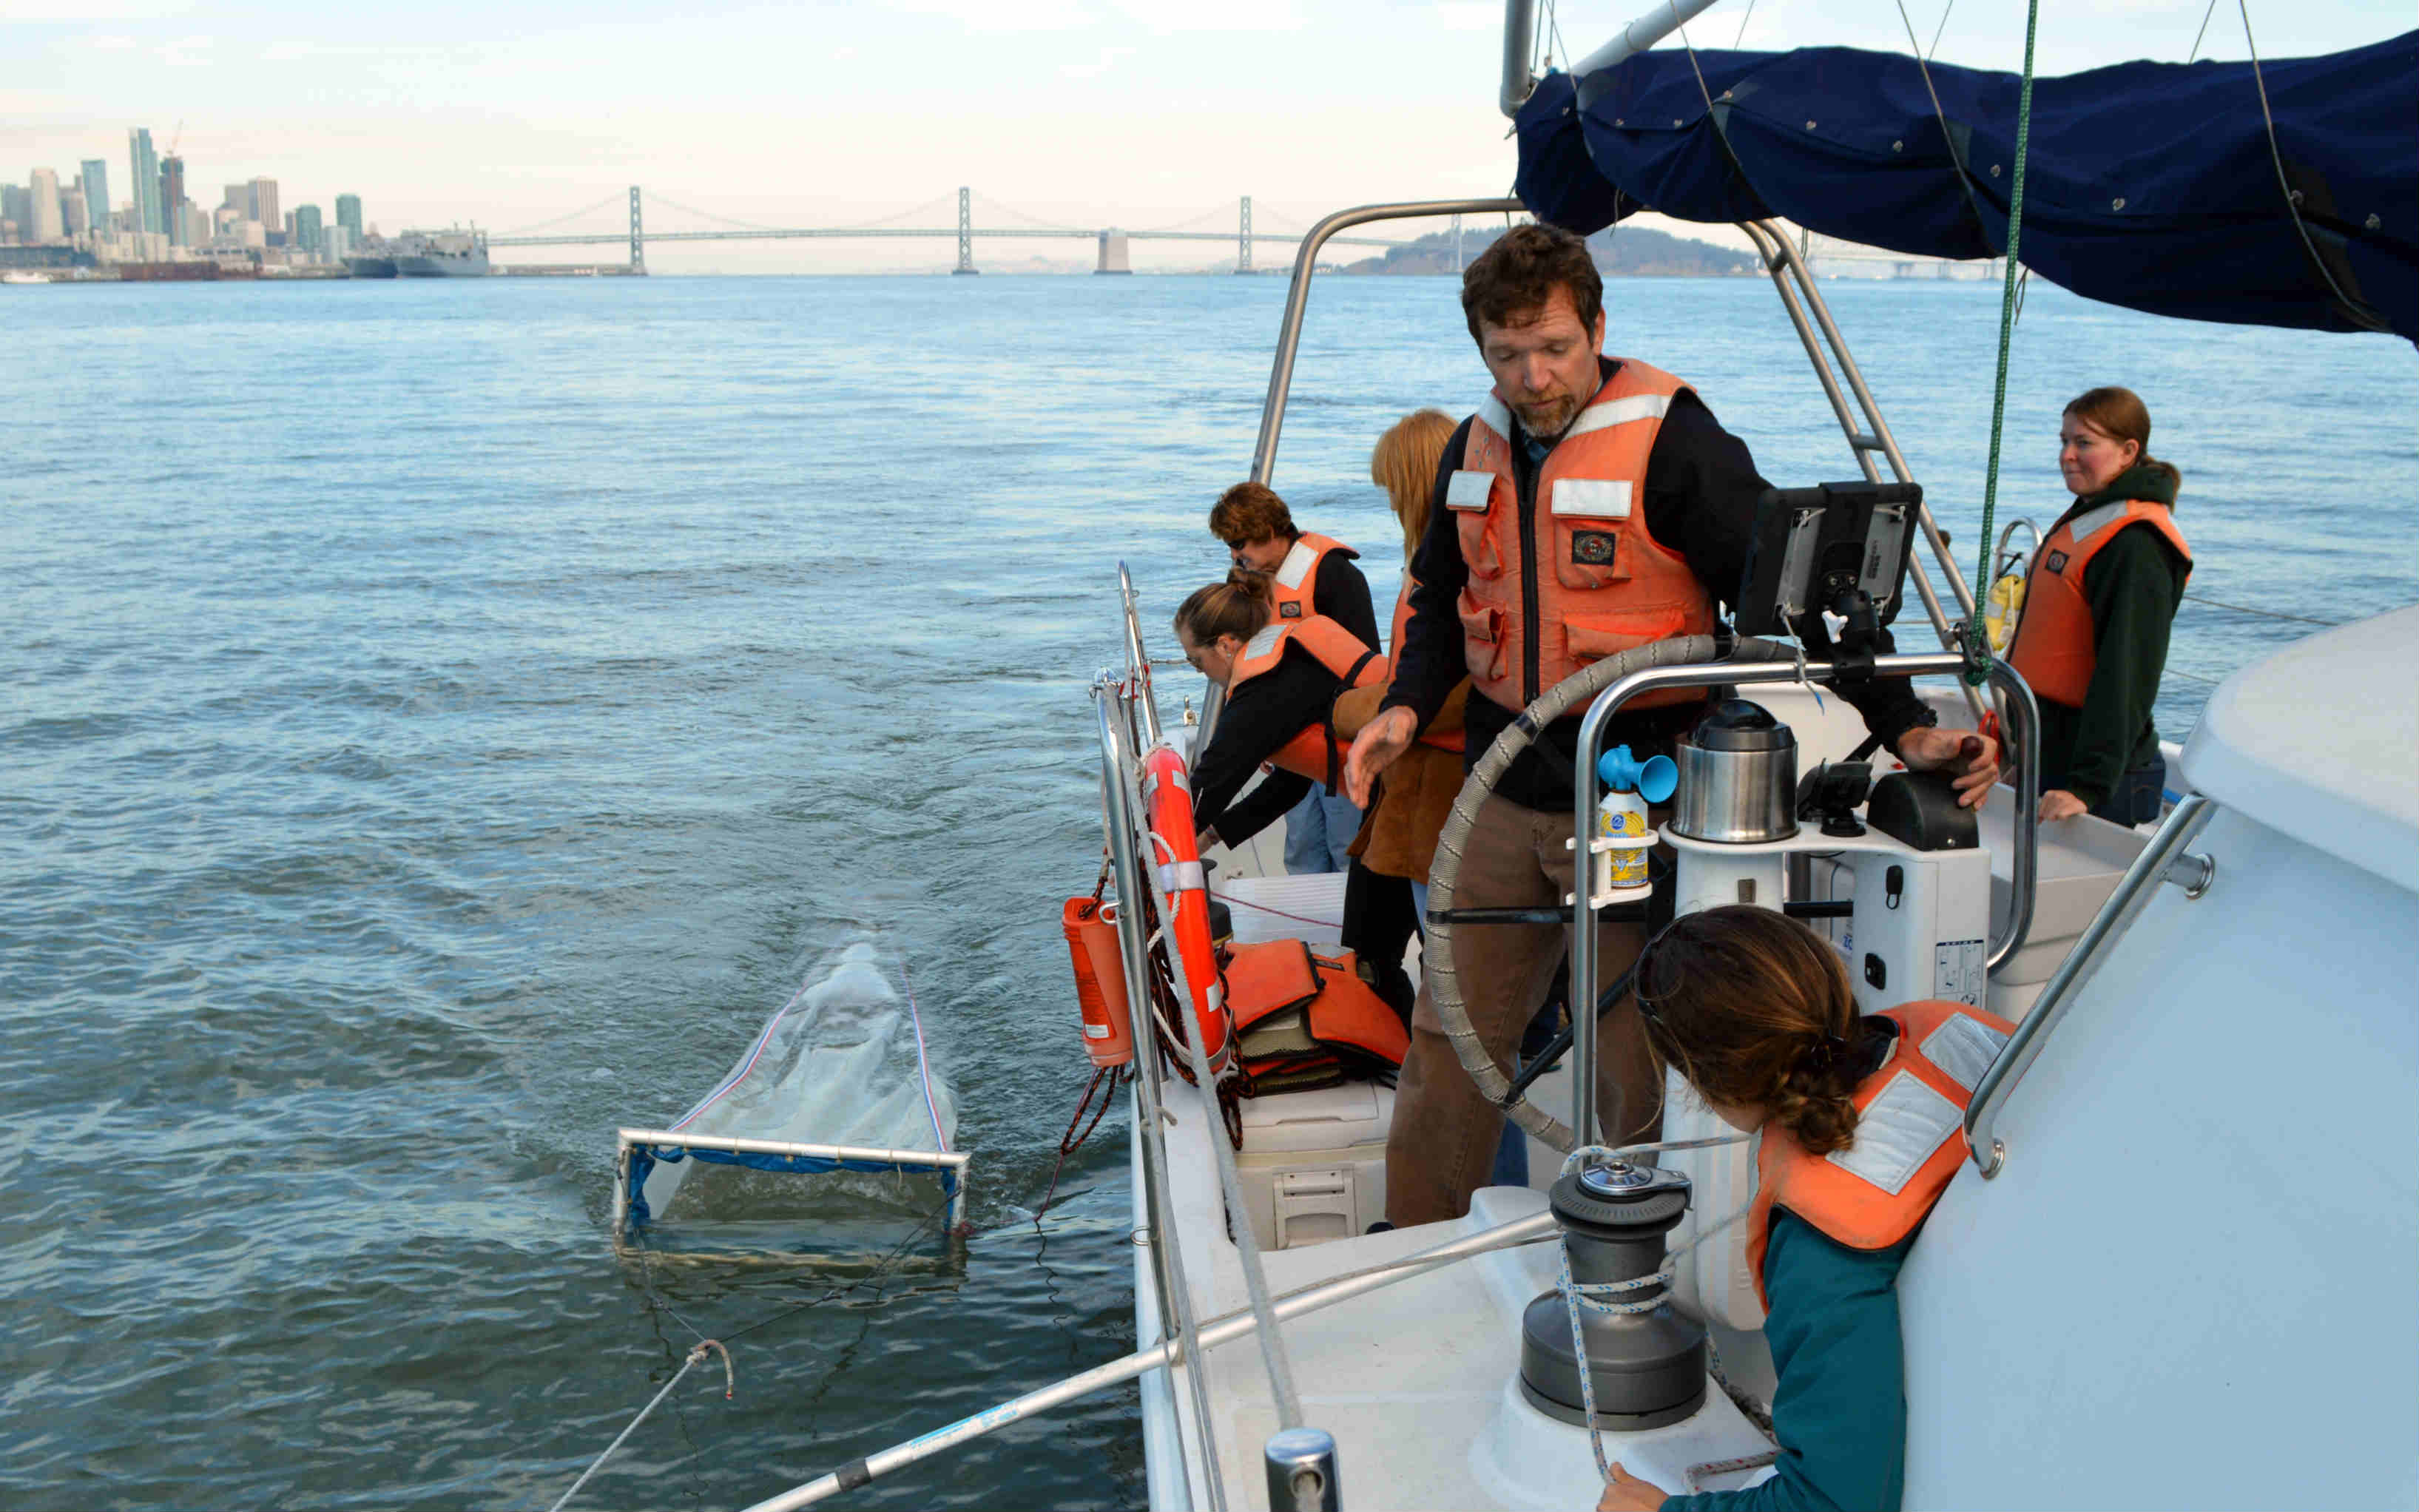 Towing from the research vessel Derek M. Baylis in San Francisco Bay. Photo KL